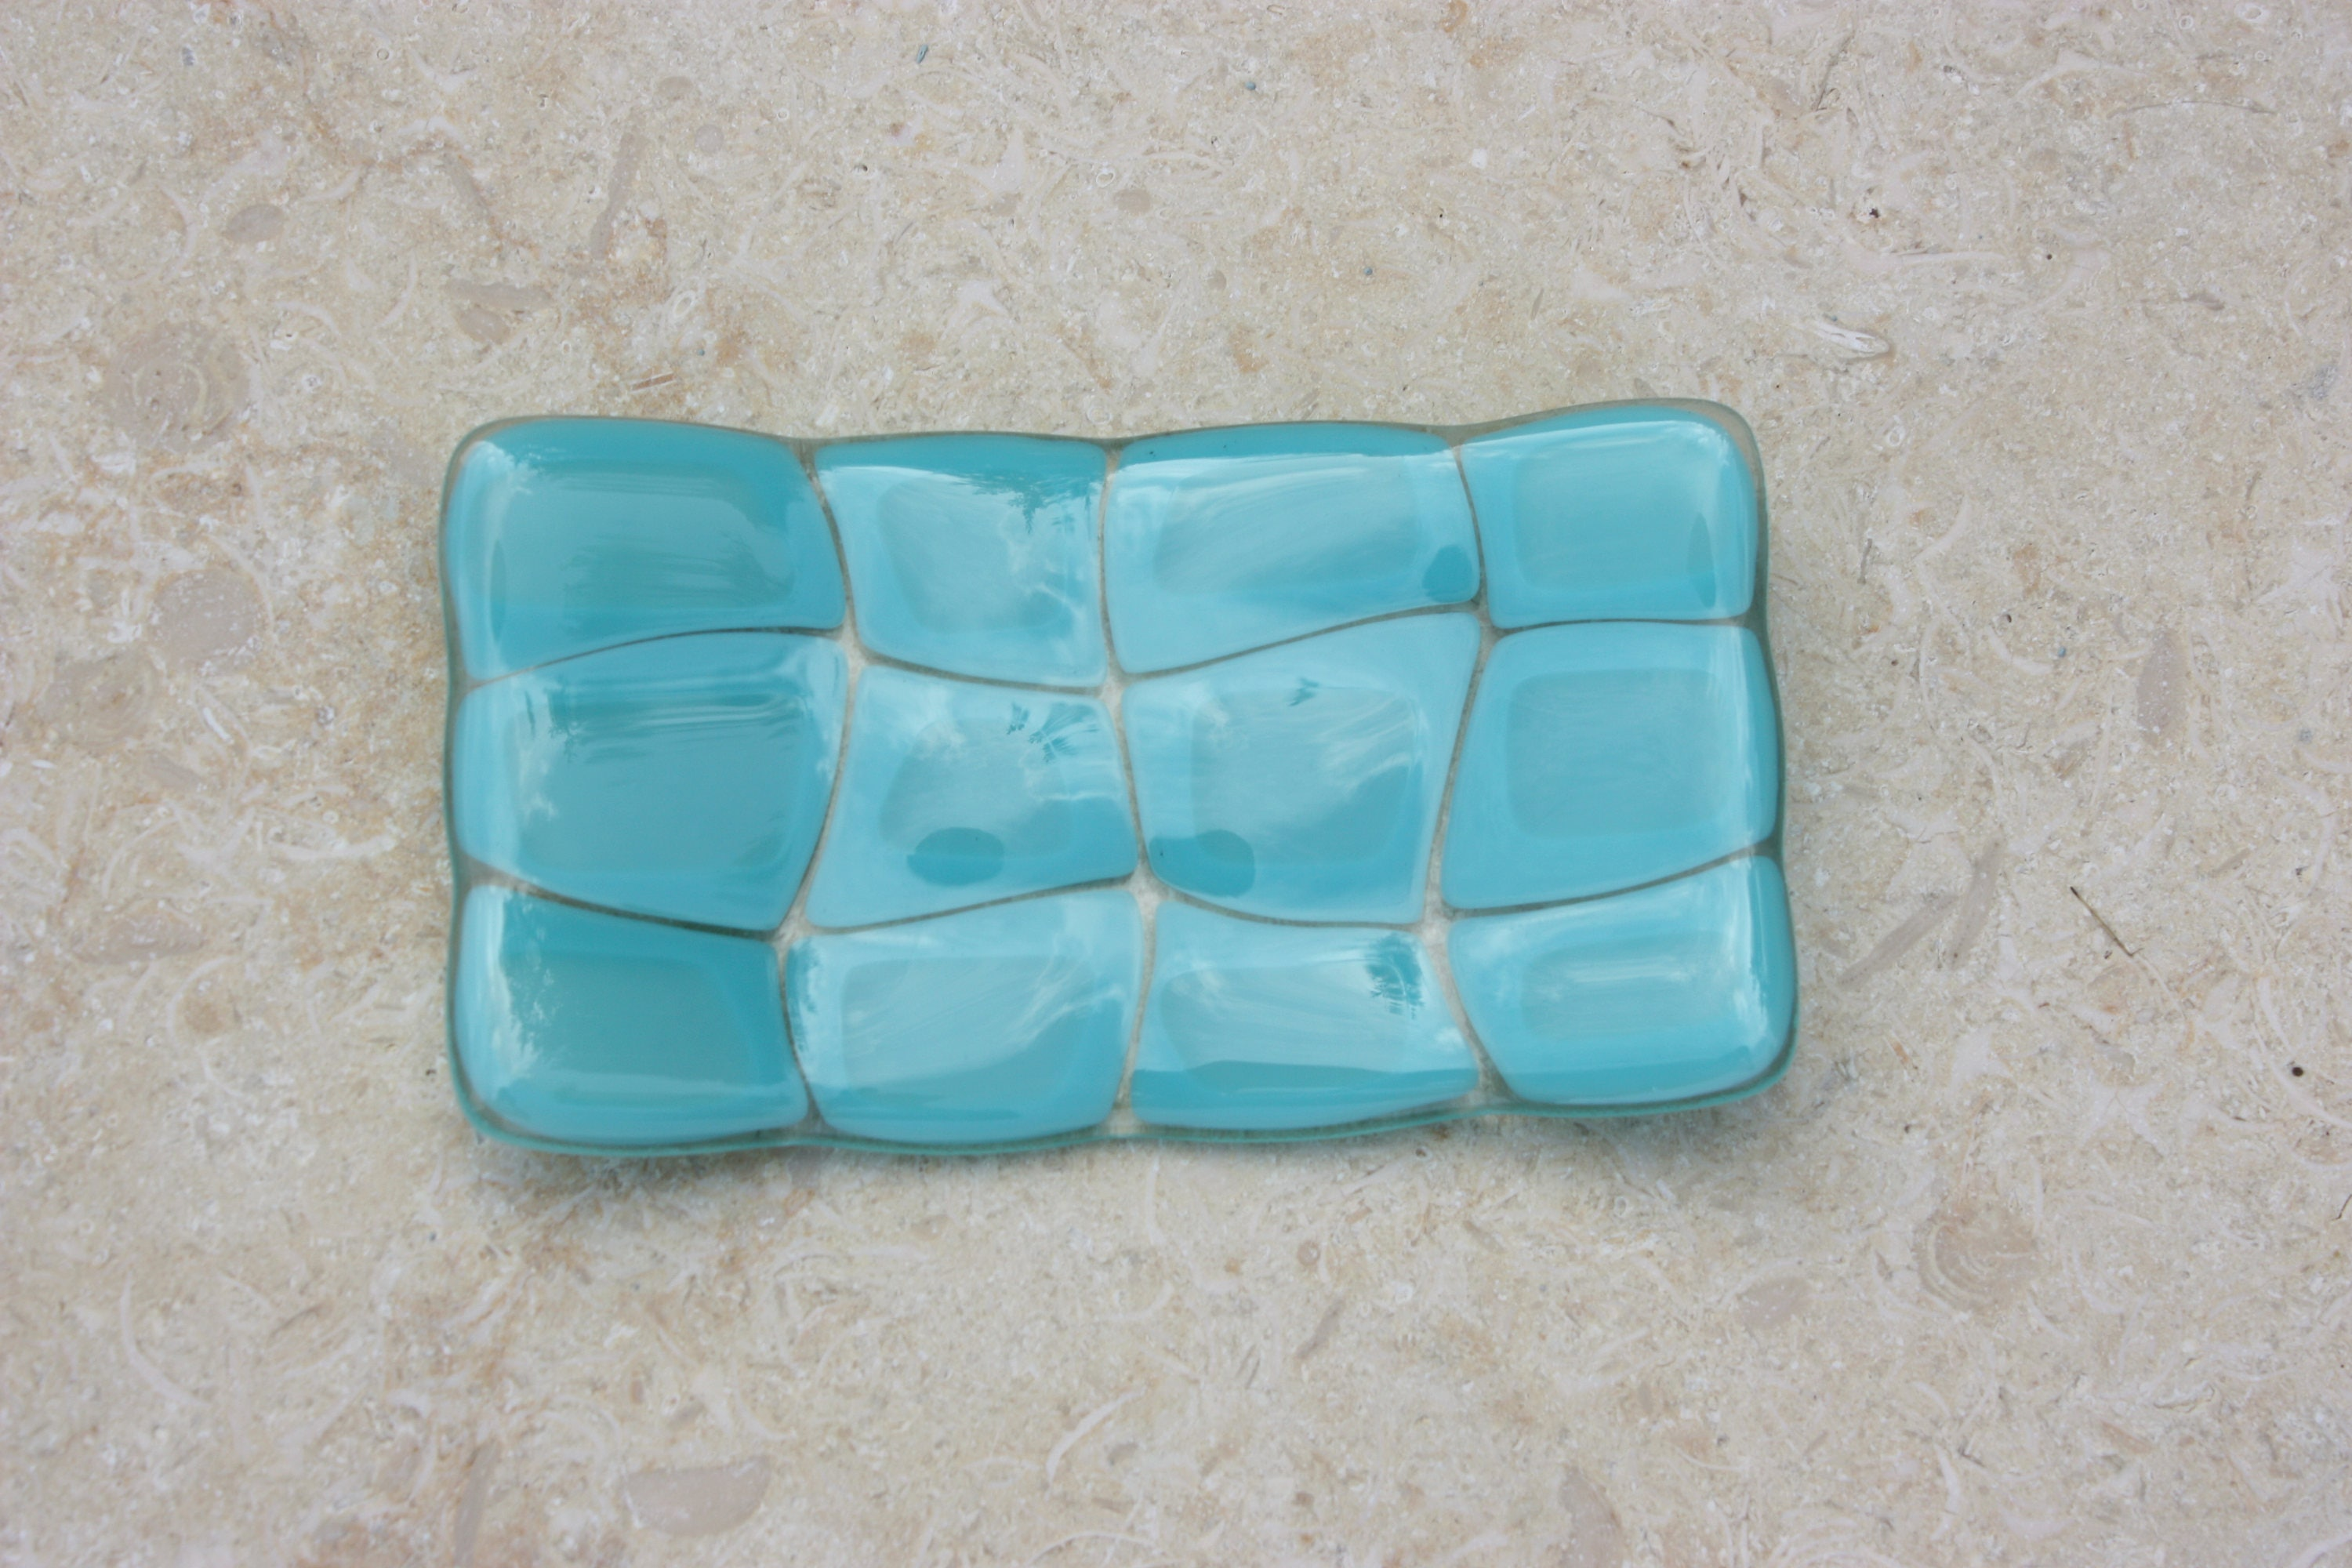 Turquoise turtle patterned fused glass soap dish handmade glass soapdish for kitchen or bathroom decor